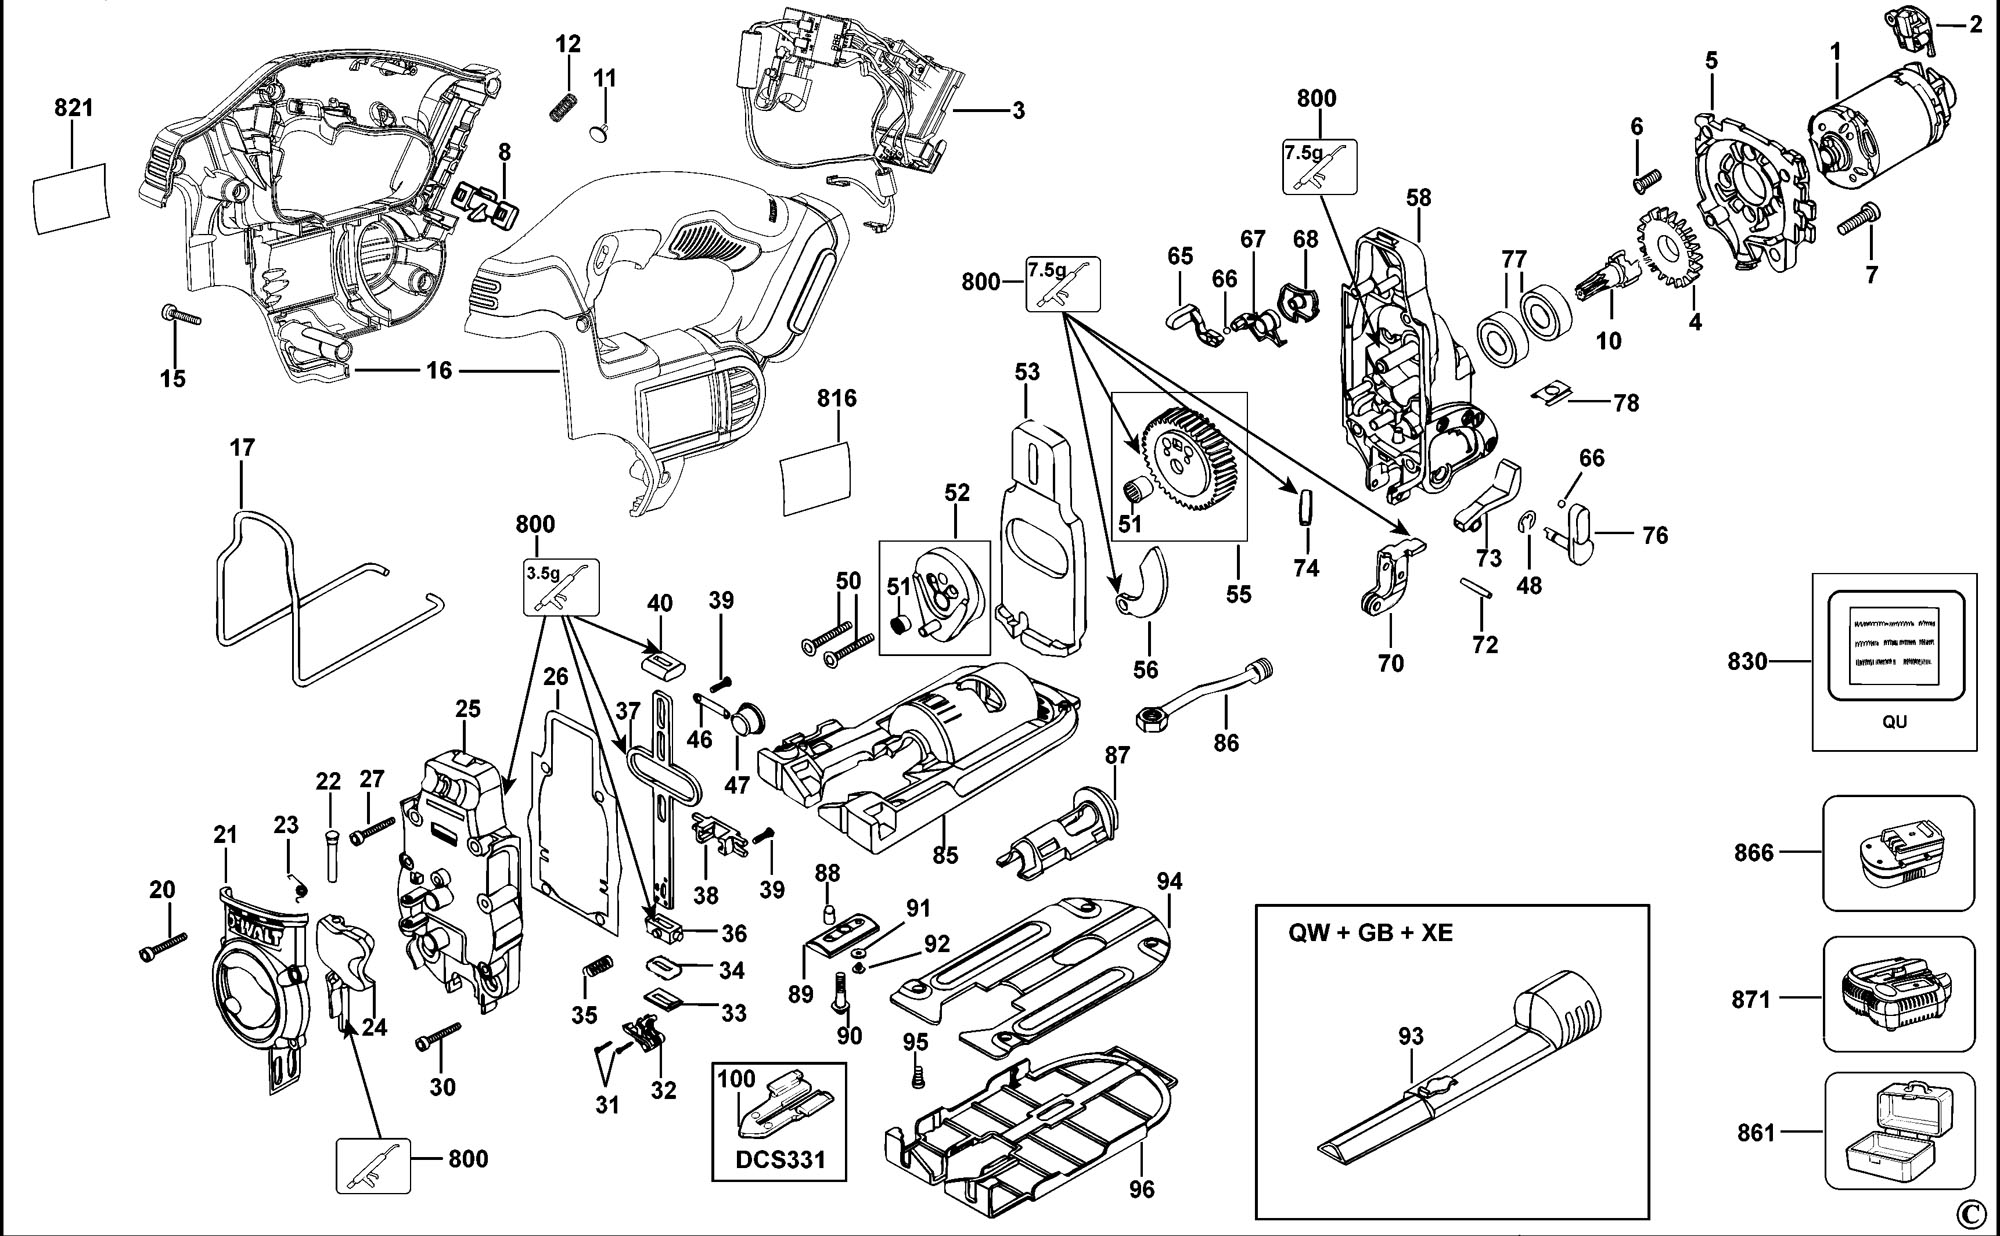 Porsche 356 Sheet Metal Engine Diagram likewise Electrical Wiring Diagram 1967 Pontiac in addition 1966 Ford Mustang Belts Diagram Html further Porsche Schaltplan also 1967 Jeep Wiring Diagram. on 1966 porsche 912 wiring diagram